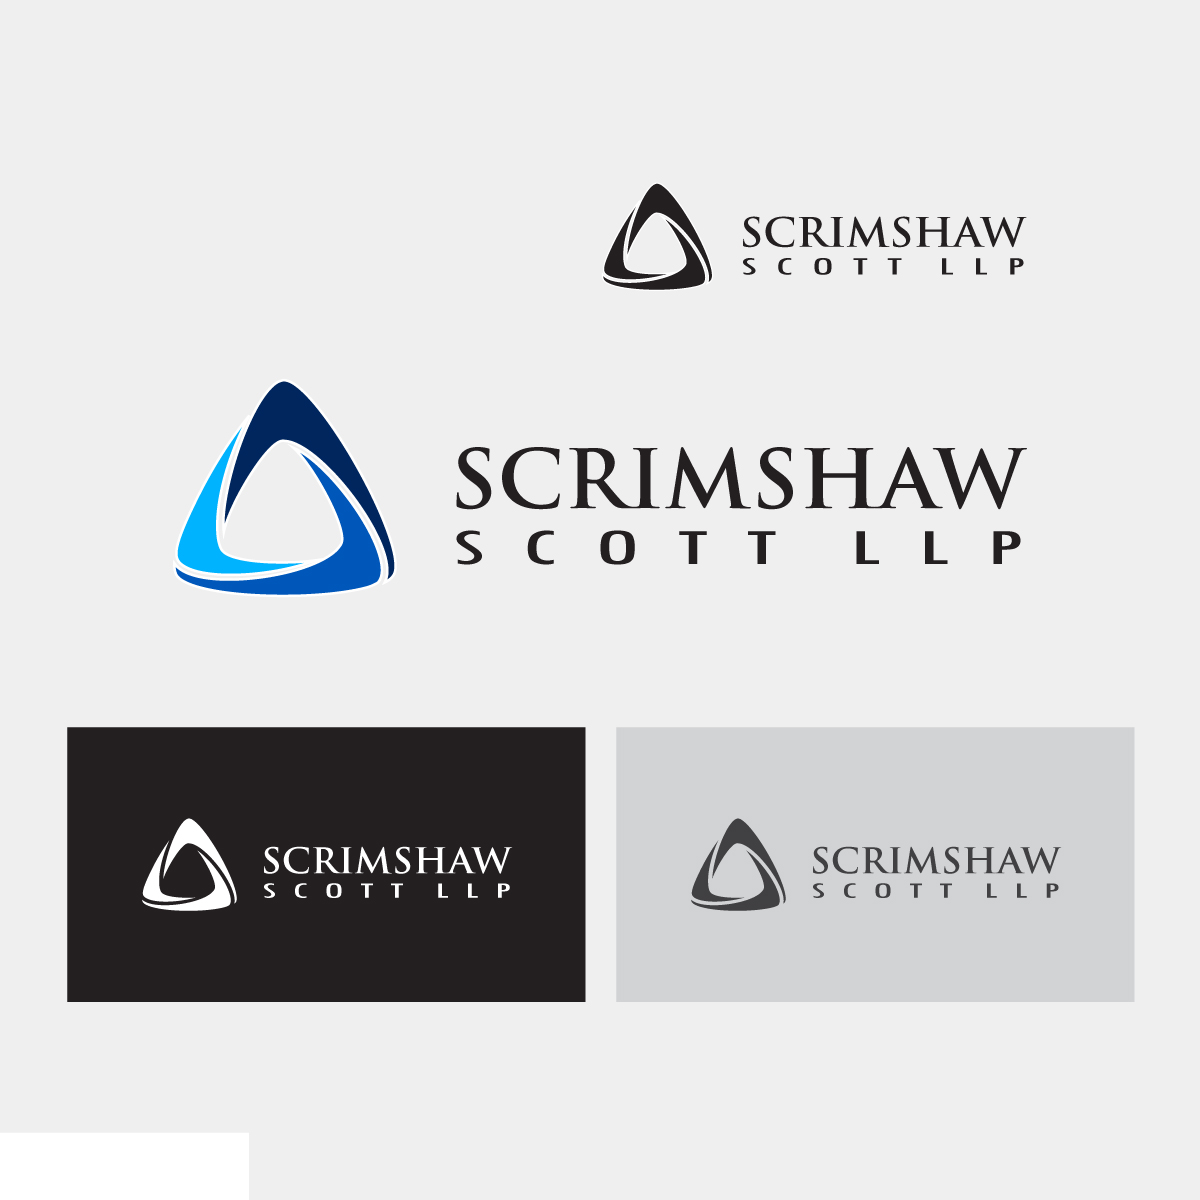 Logo Design by danelav - Entry No. 46 in the Logo Design Contest Creative Logo Design for Scrimshaw Scott LLP.